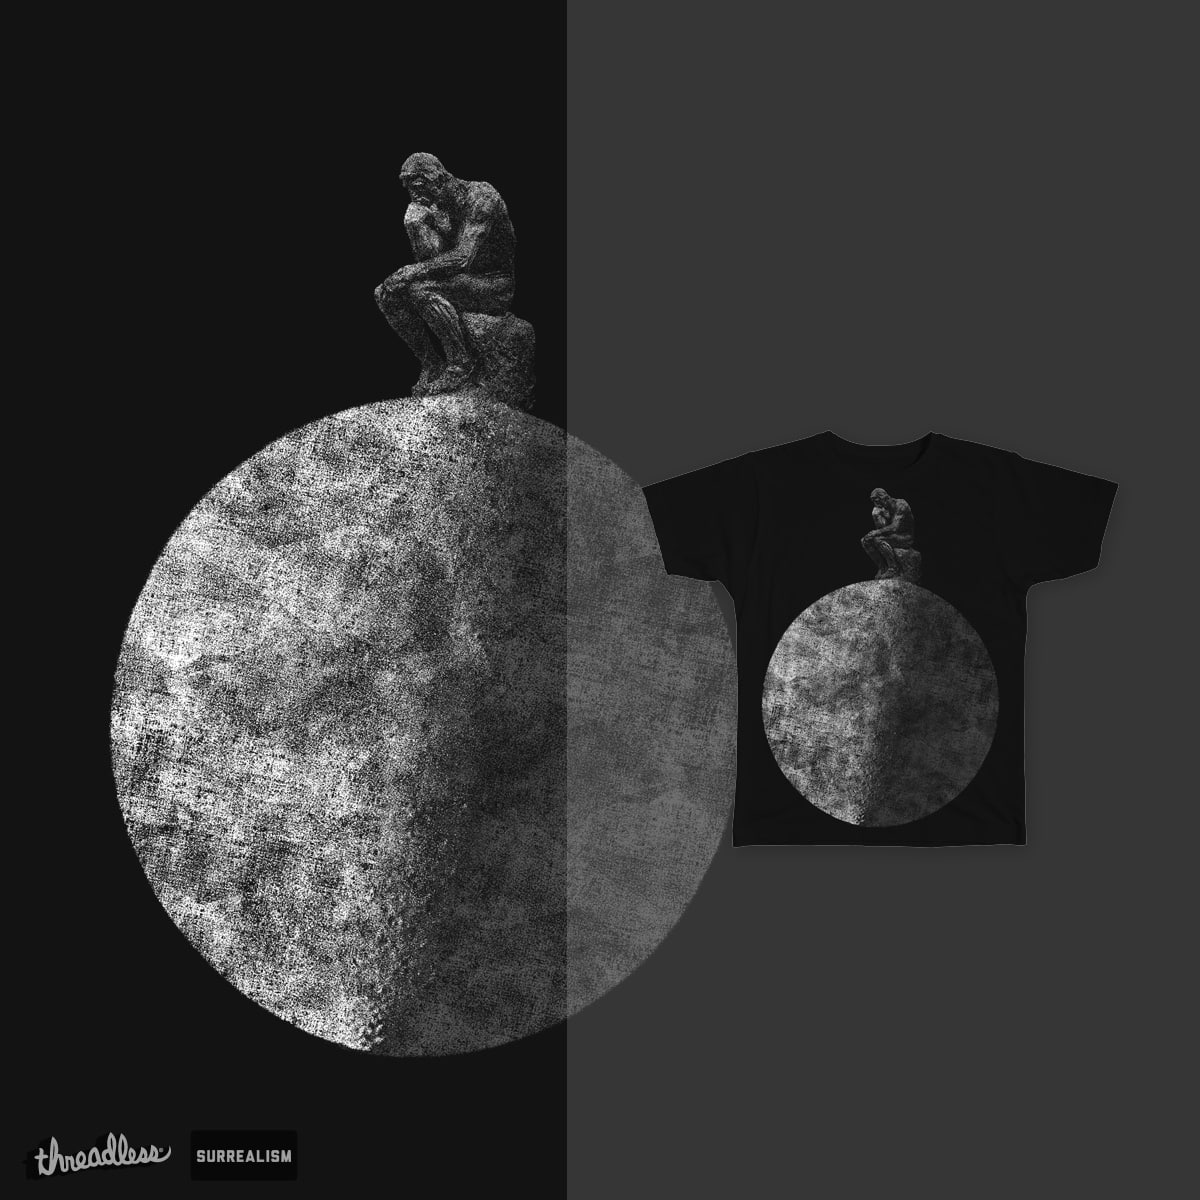 surreal depressive by bulo on Threadless